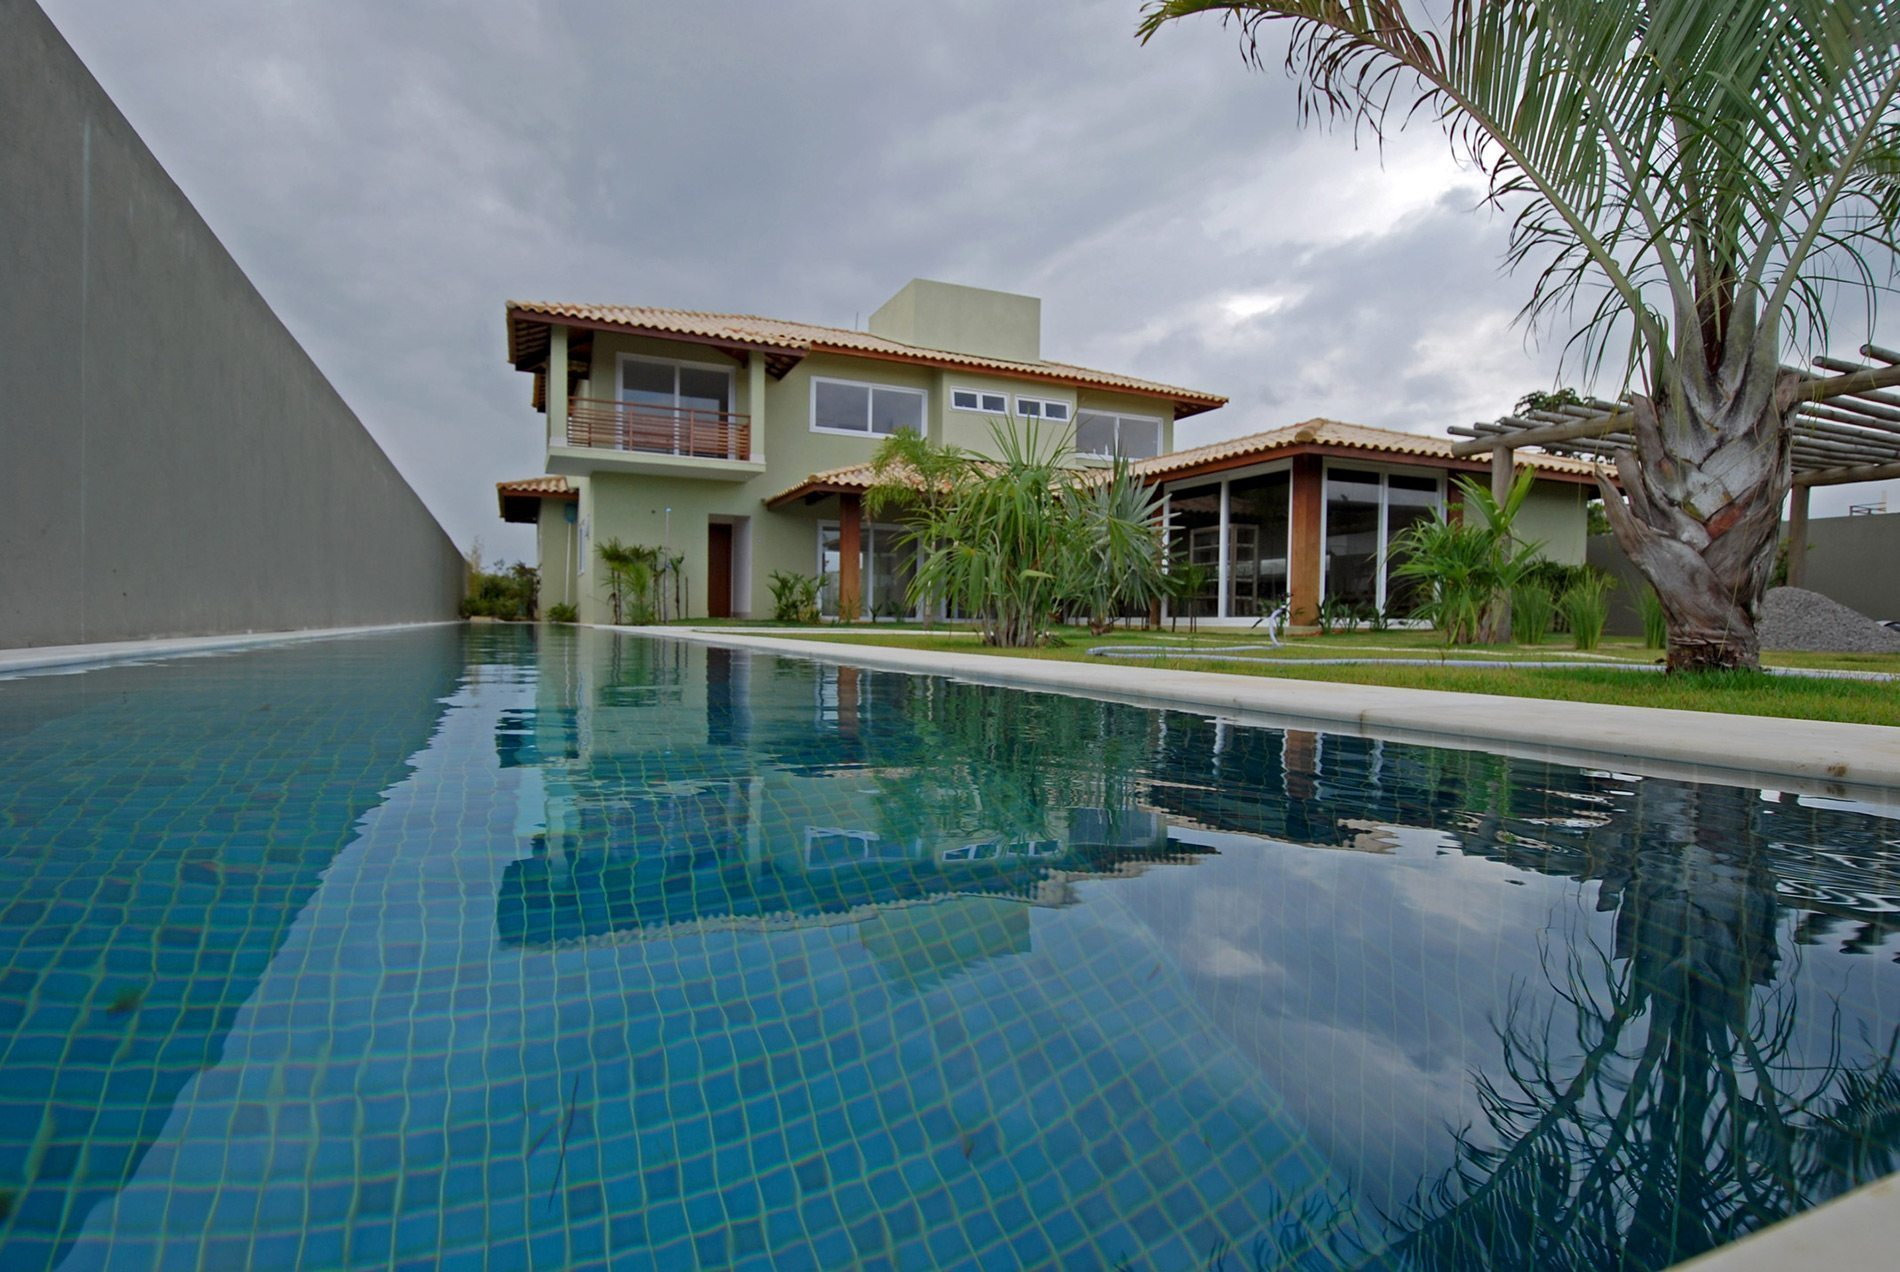 Stunning house with pool for sale in busca vida hansen - Piscina in casa ...